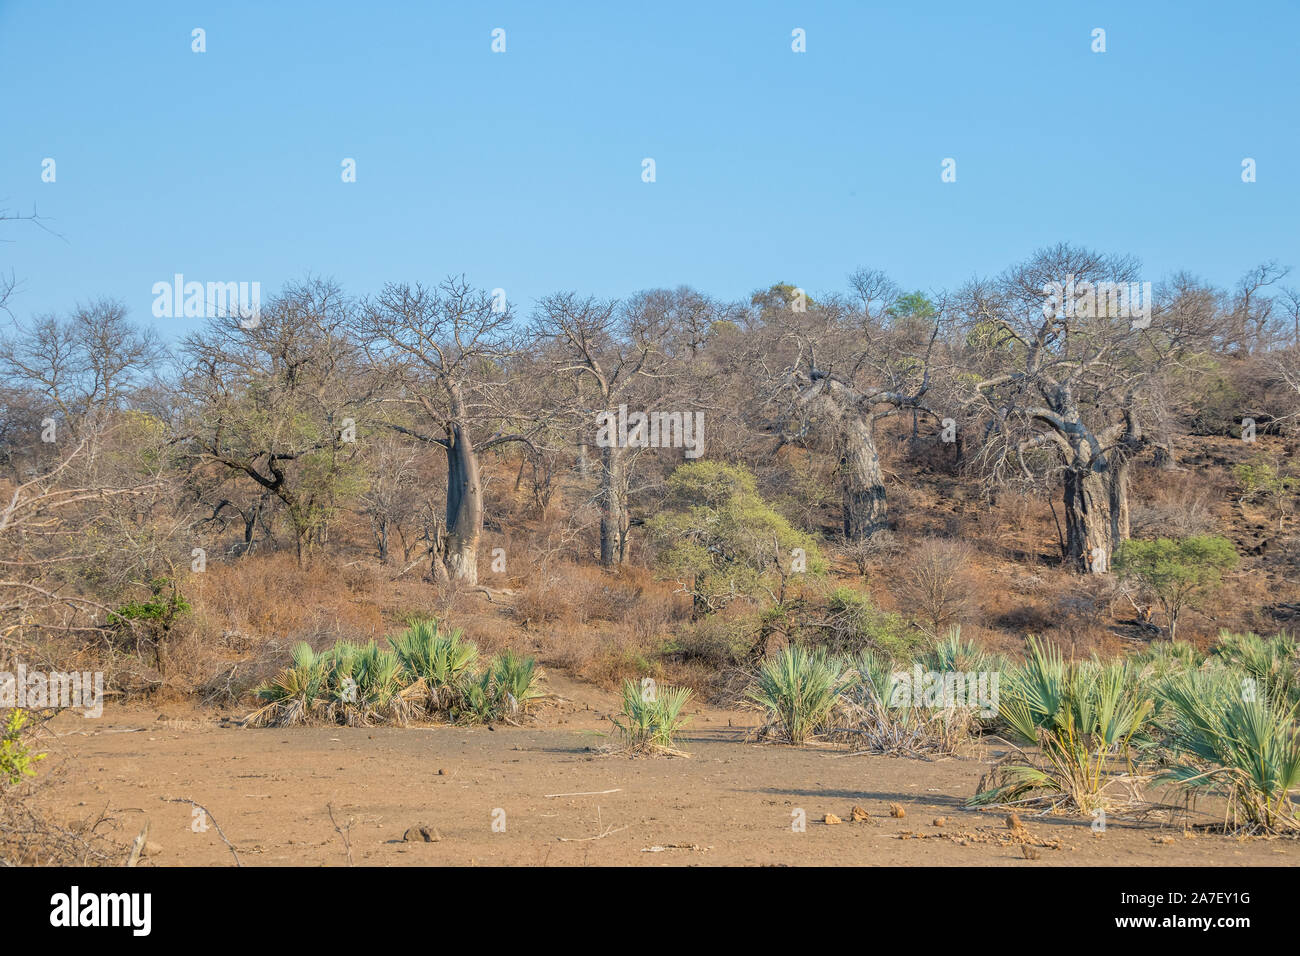 Lala palms and baobab trees in a dry Limpopo river flood plain image with copy space in horizontal format Stock Photo